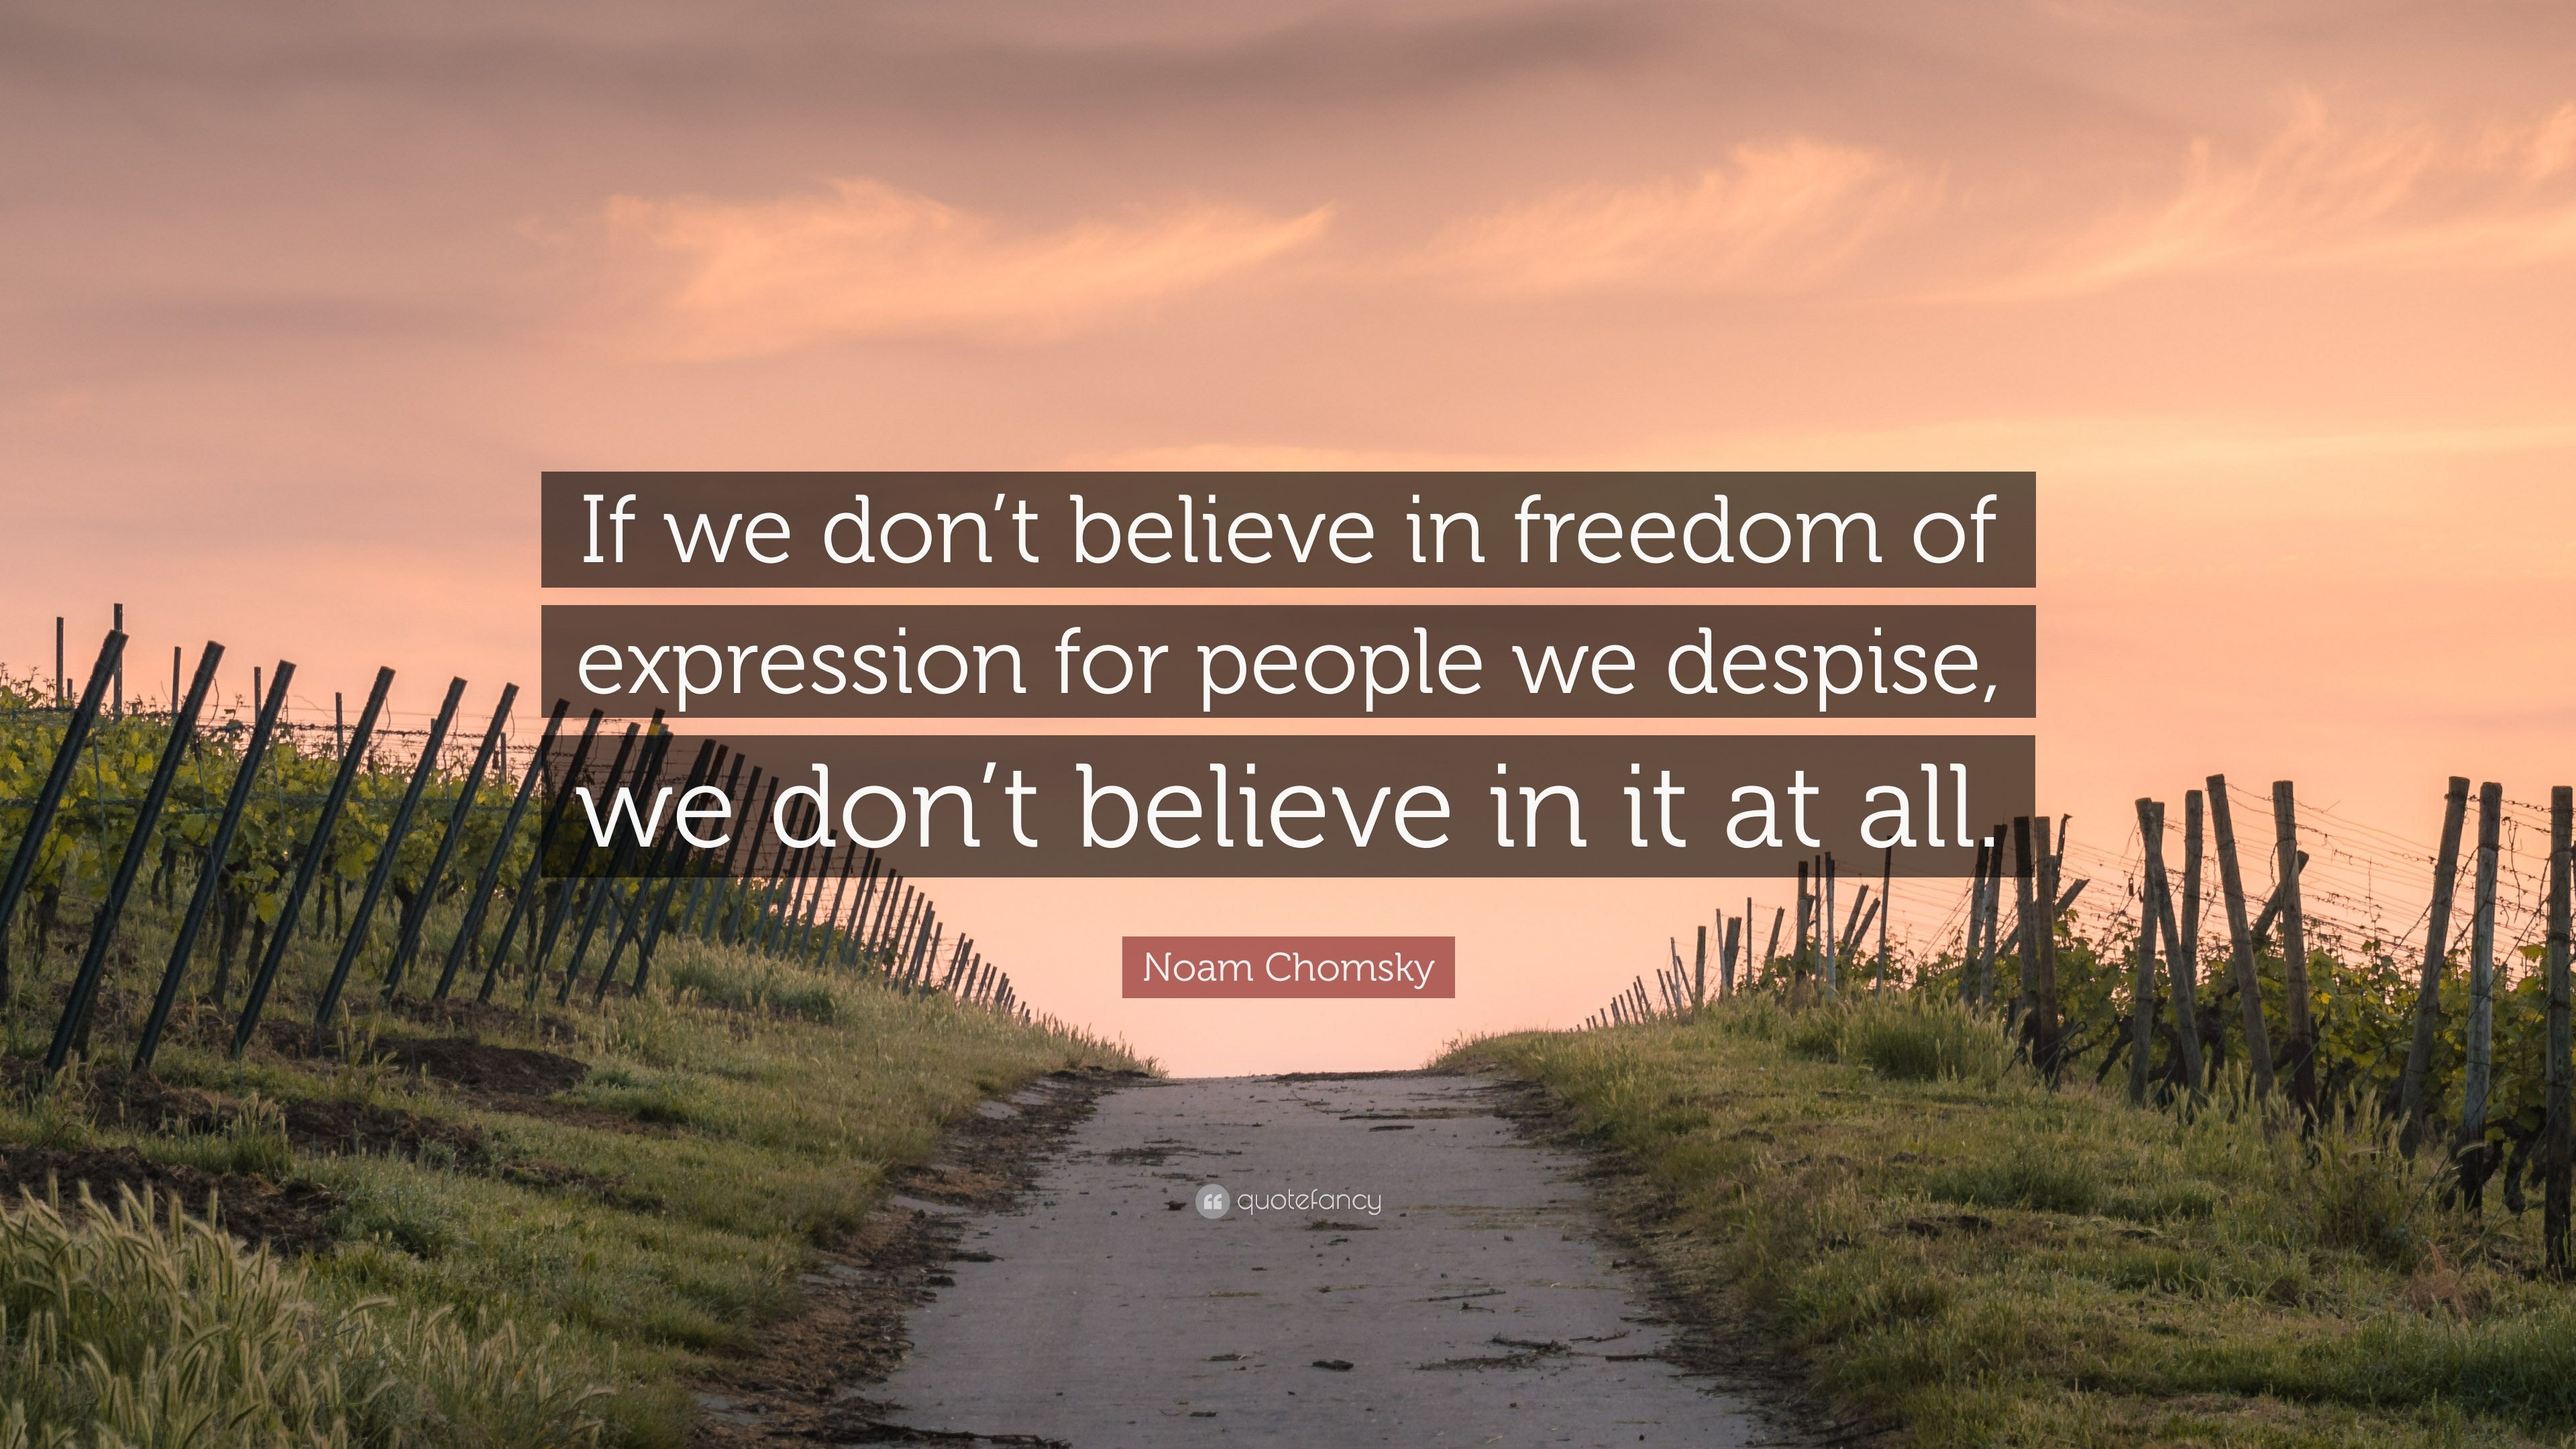 If we don't believe in freedom of expression for people we despise, we don't believe in it at all.